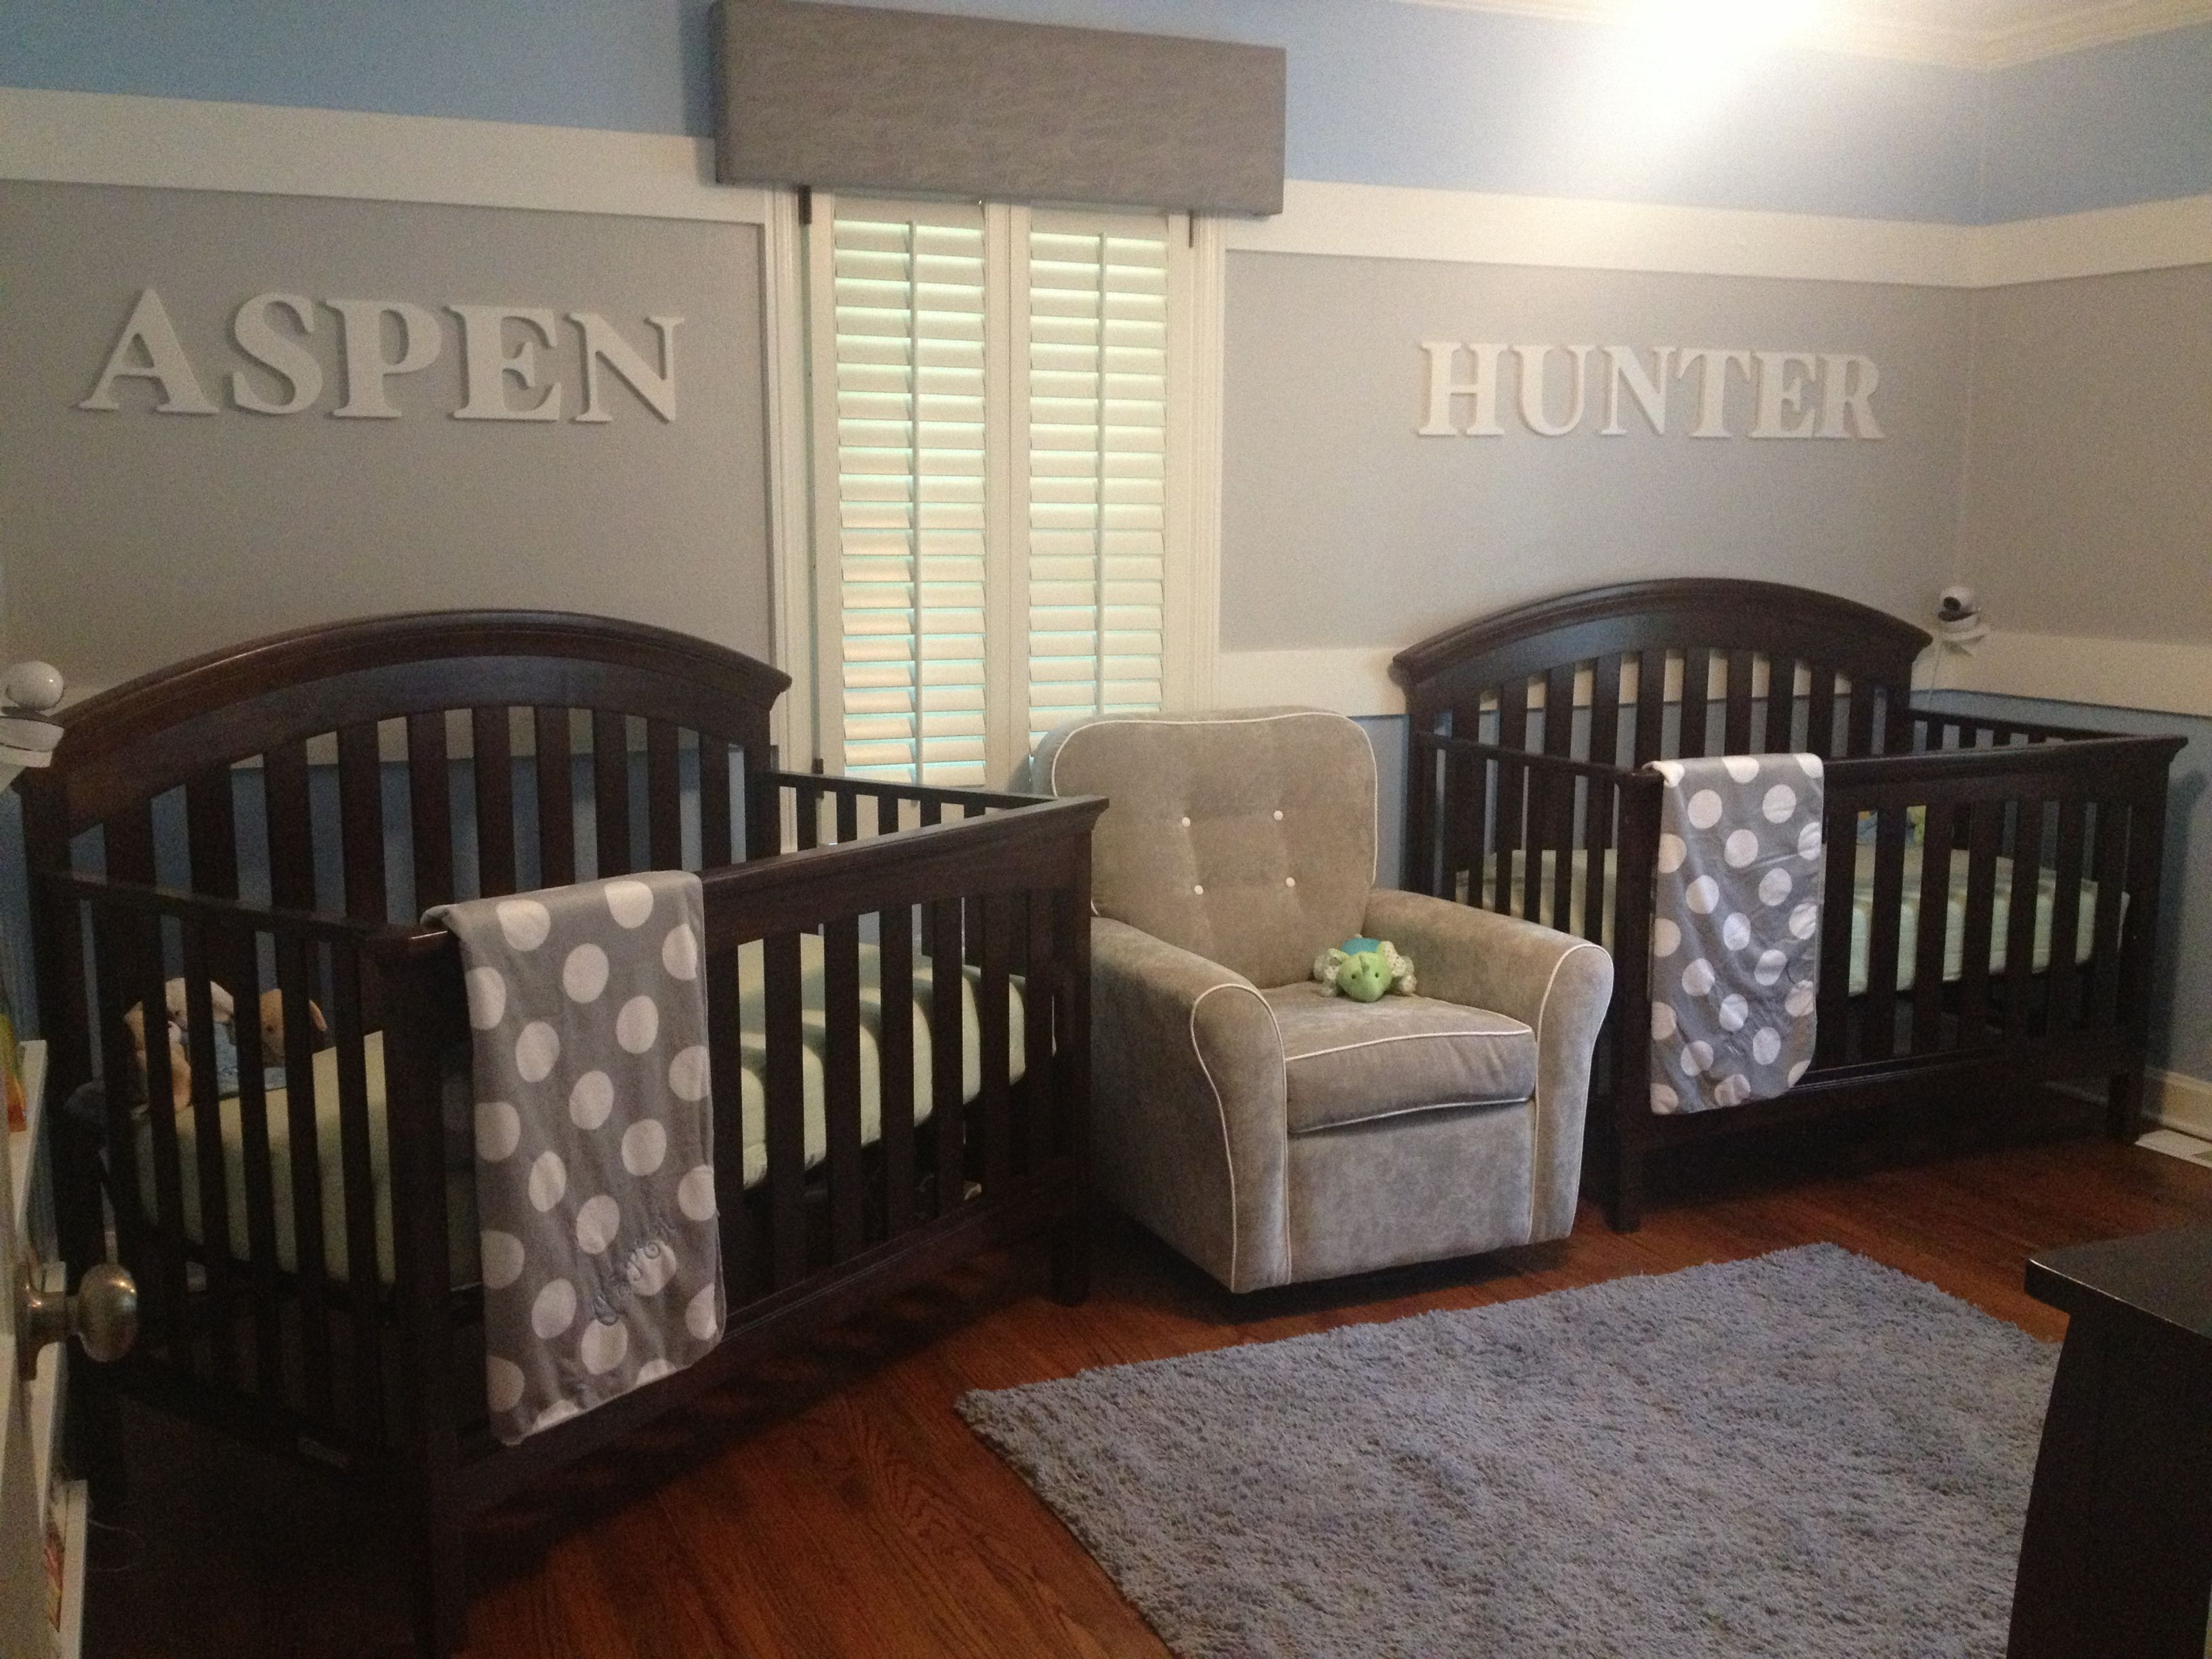 Vintage Baby Boy Room Ideas: Baby Boy Nursery Ideas Vintage As Baby Girl  Room Decor